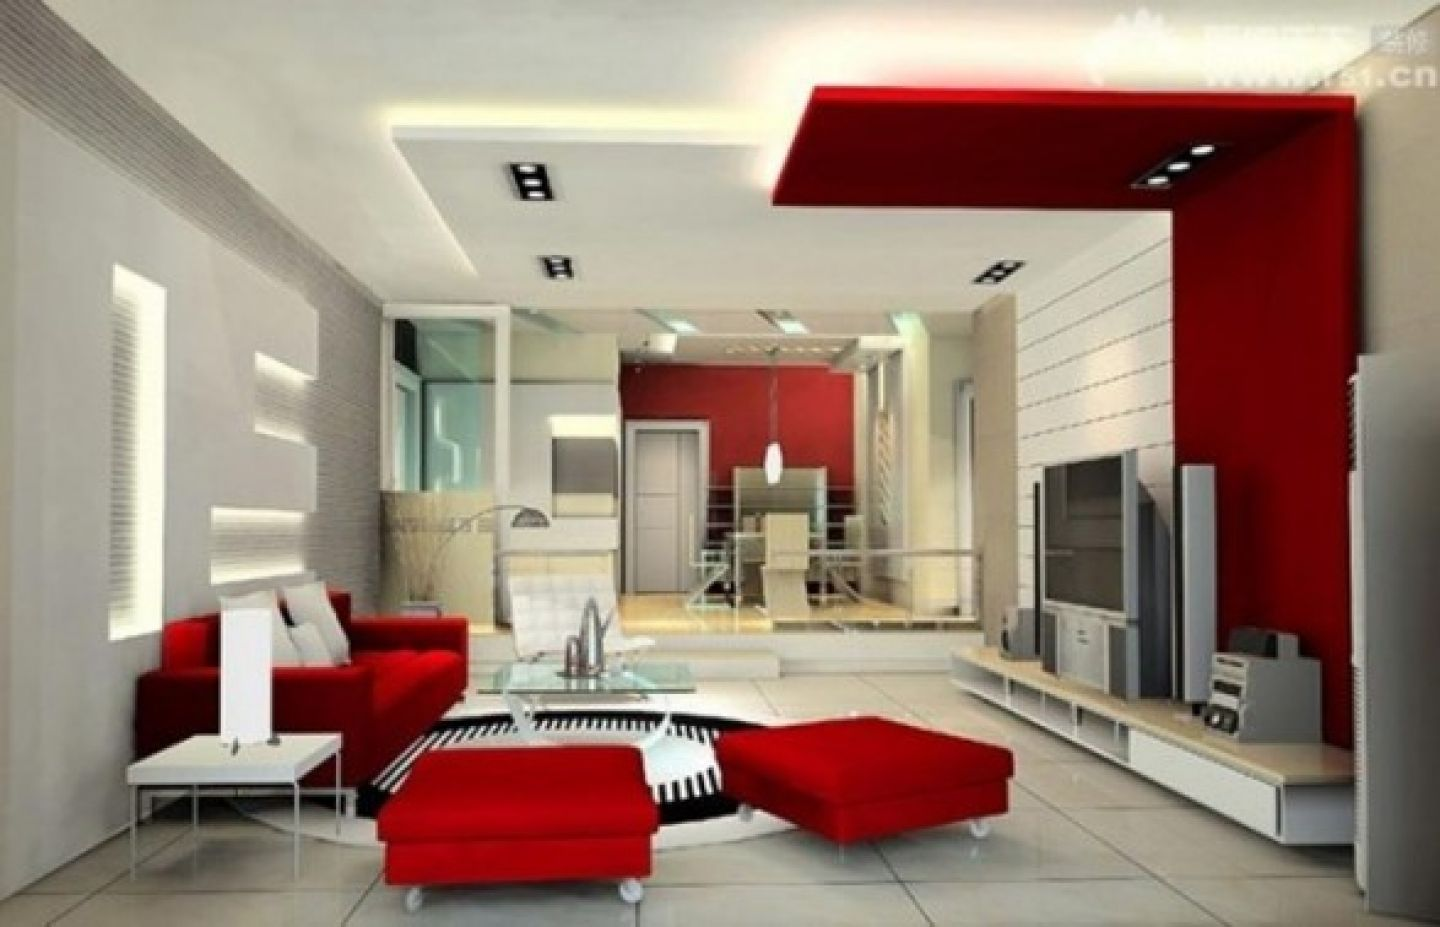 Modern Living Room Designs Modern Living Room Design Ideas  Google 搜索  Complete Living